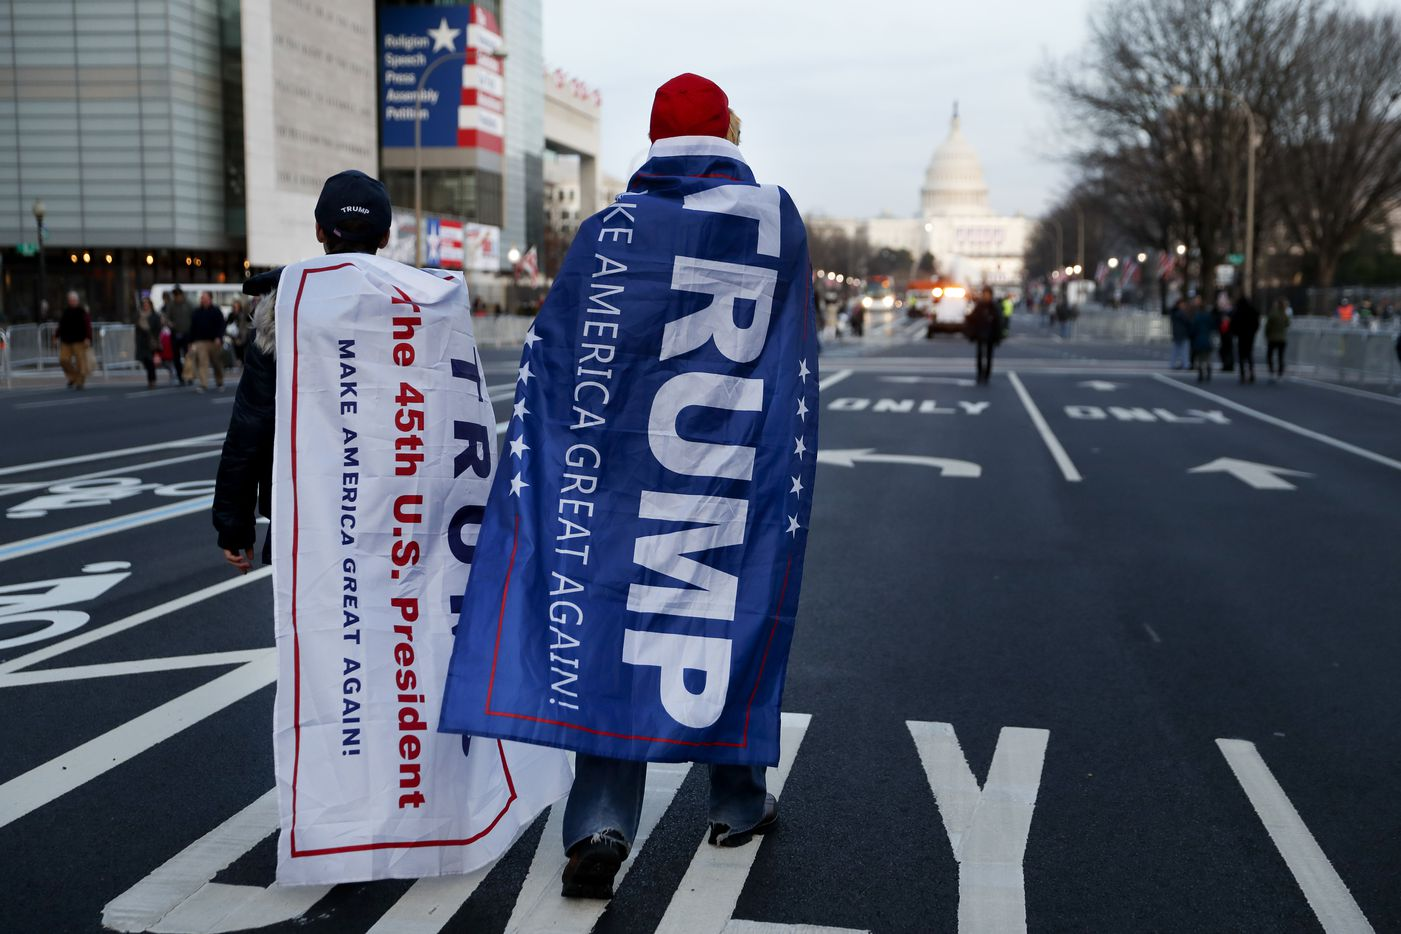 Supporters of President-elect Donald Trump walk along Pennsylvania Avenue after it was closed down to thru-traffic as security tightens ahead of the presidential inauguration, Thursday, Jan. 19, 2017, in Washington.